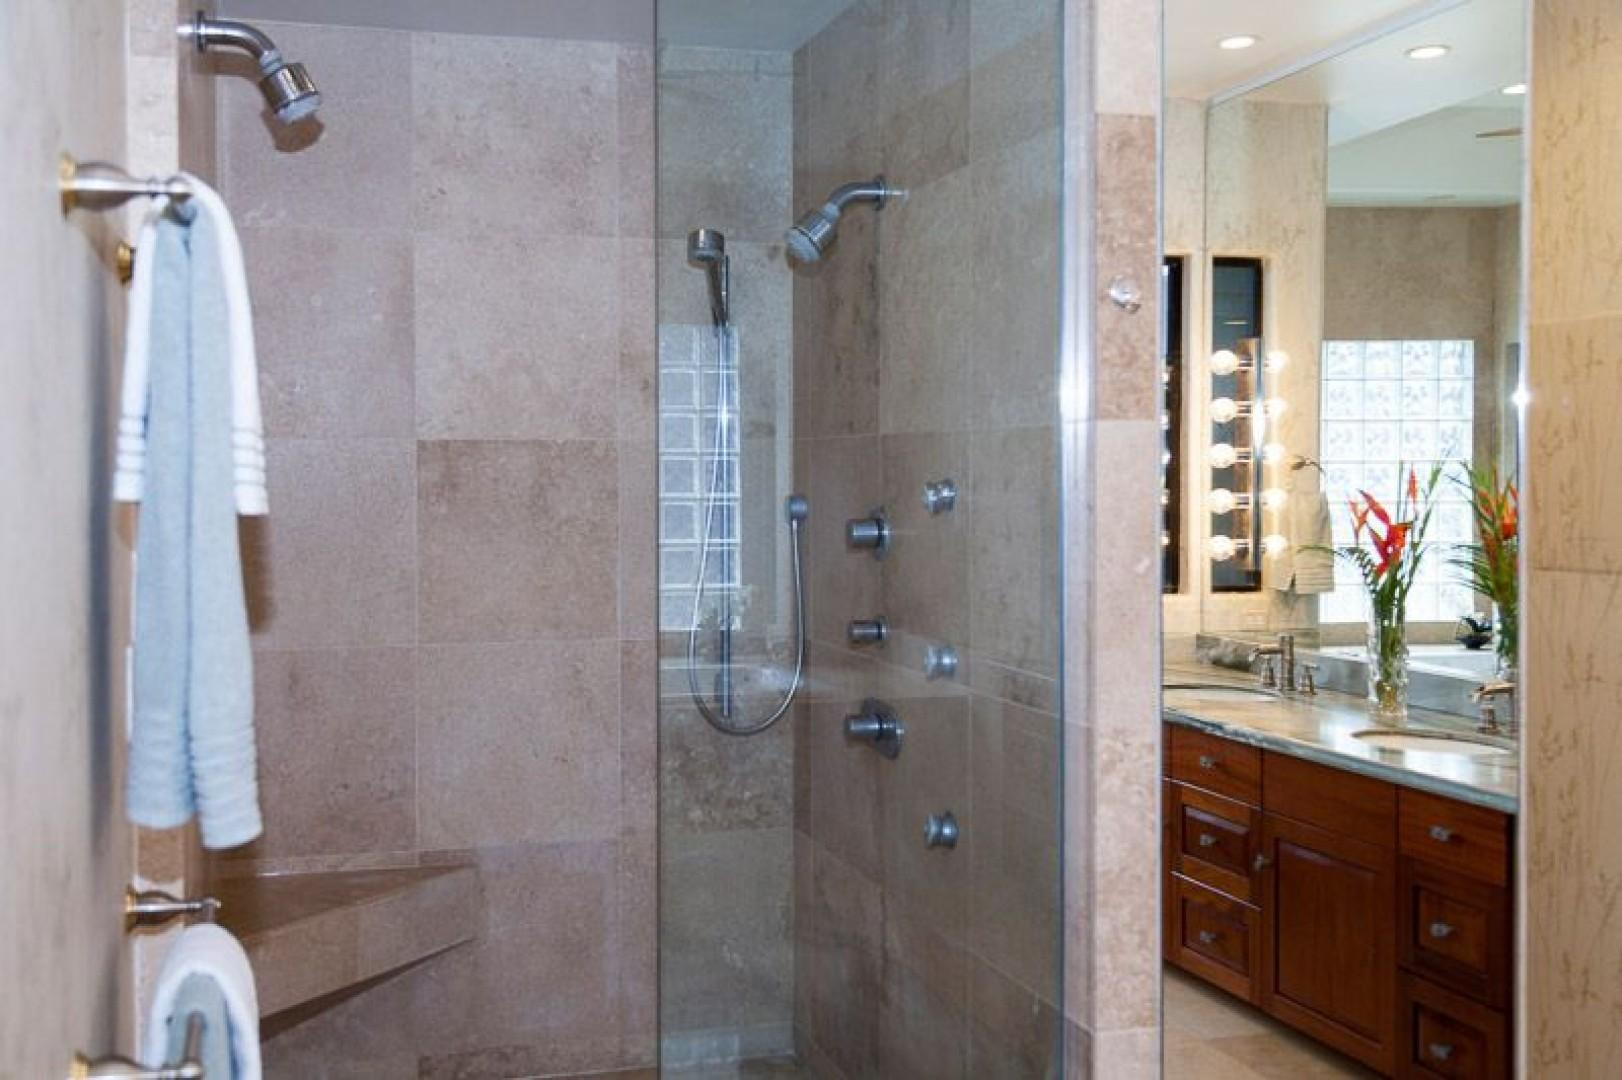 South Master Bath with walk in shower and double vanity